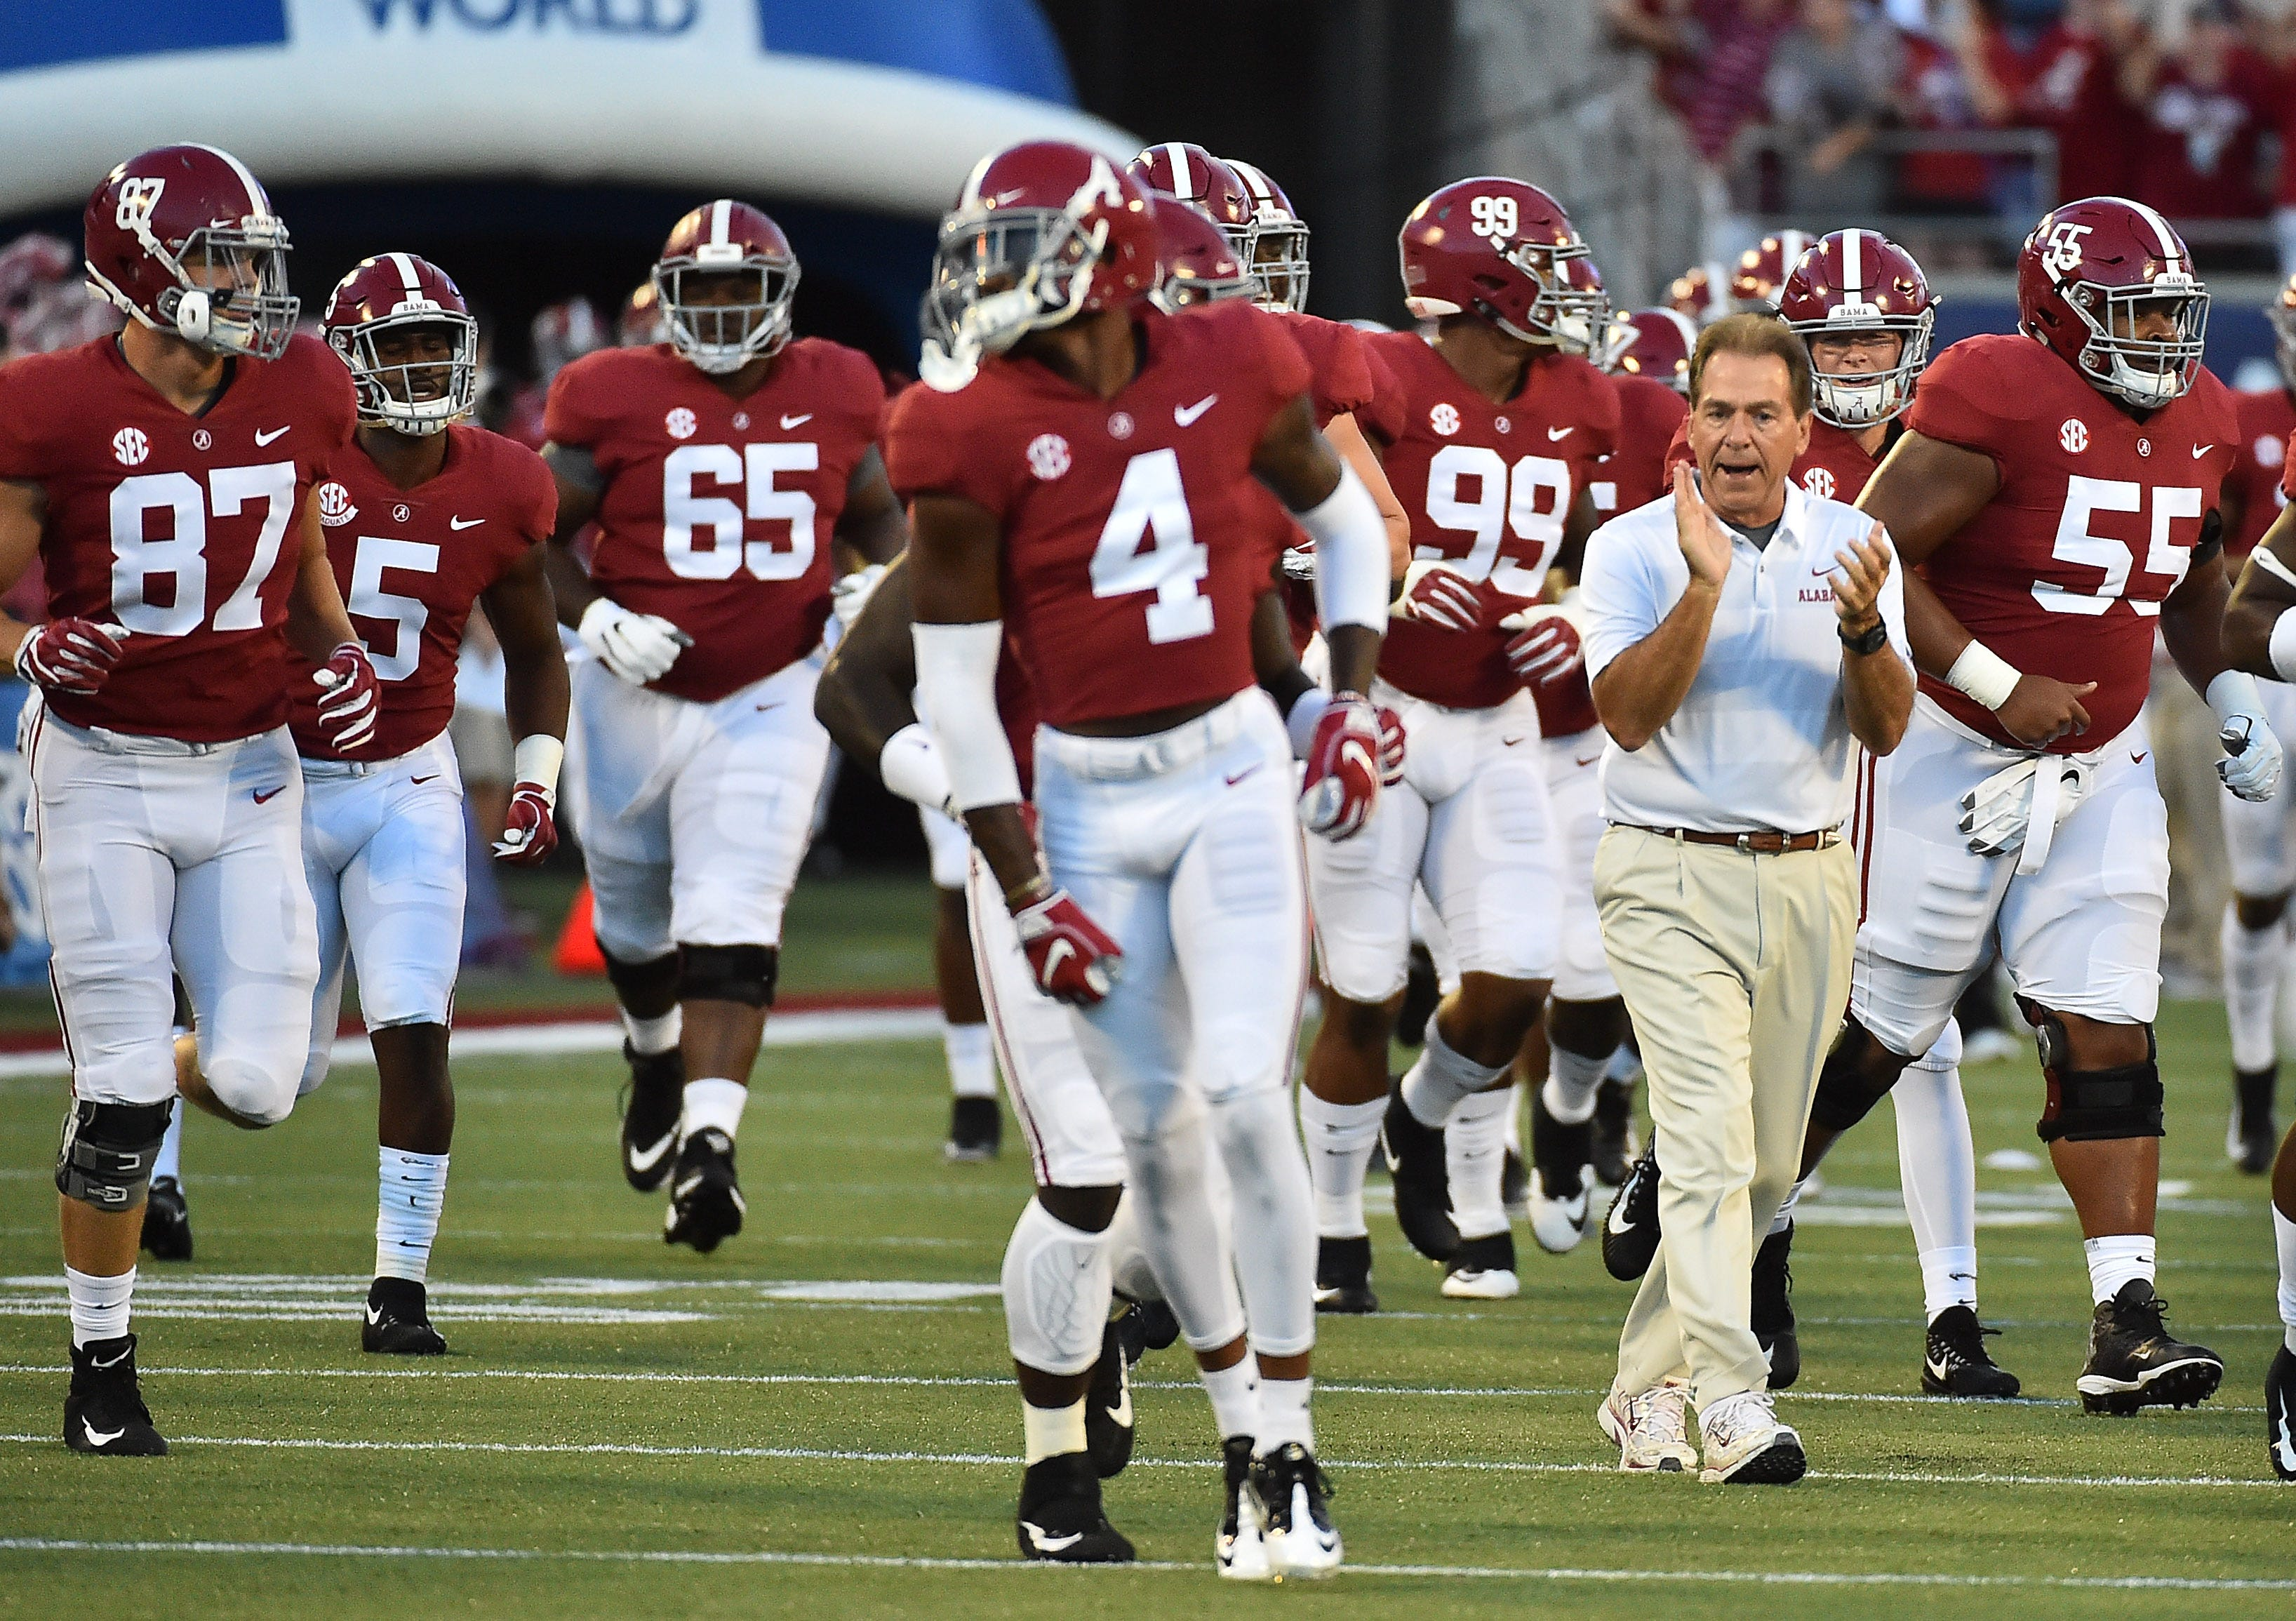 Nick Saban owes ESPN's Maria Taylor an apology, the first of likely more he will owe